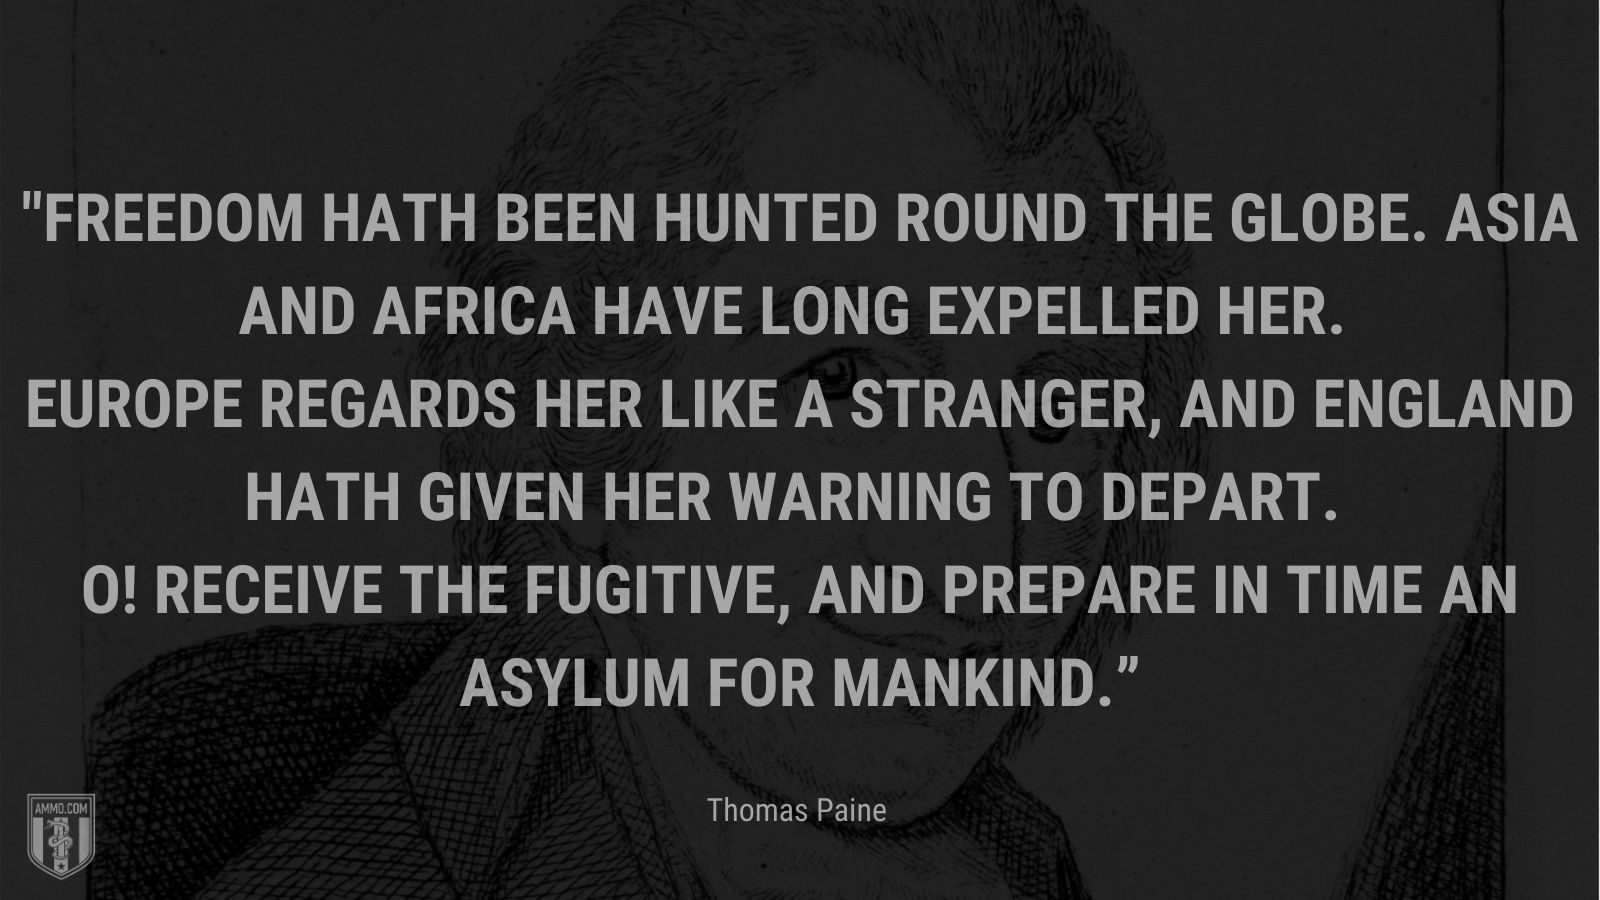 """""""Freedom hath been hunted round the globe. Asia and Africa have long expelled her. Europe regards her like a stranger, and England hath given her warning to depart. O! Receive the fugitive, and prepare in time an asylum for mankind."""" - Thomas Paine"""